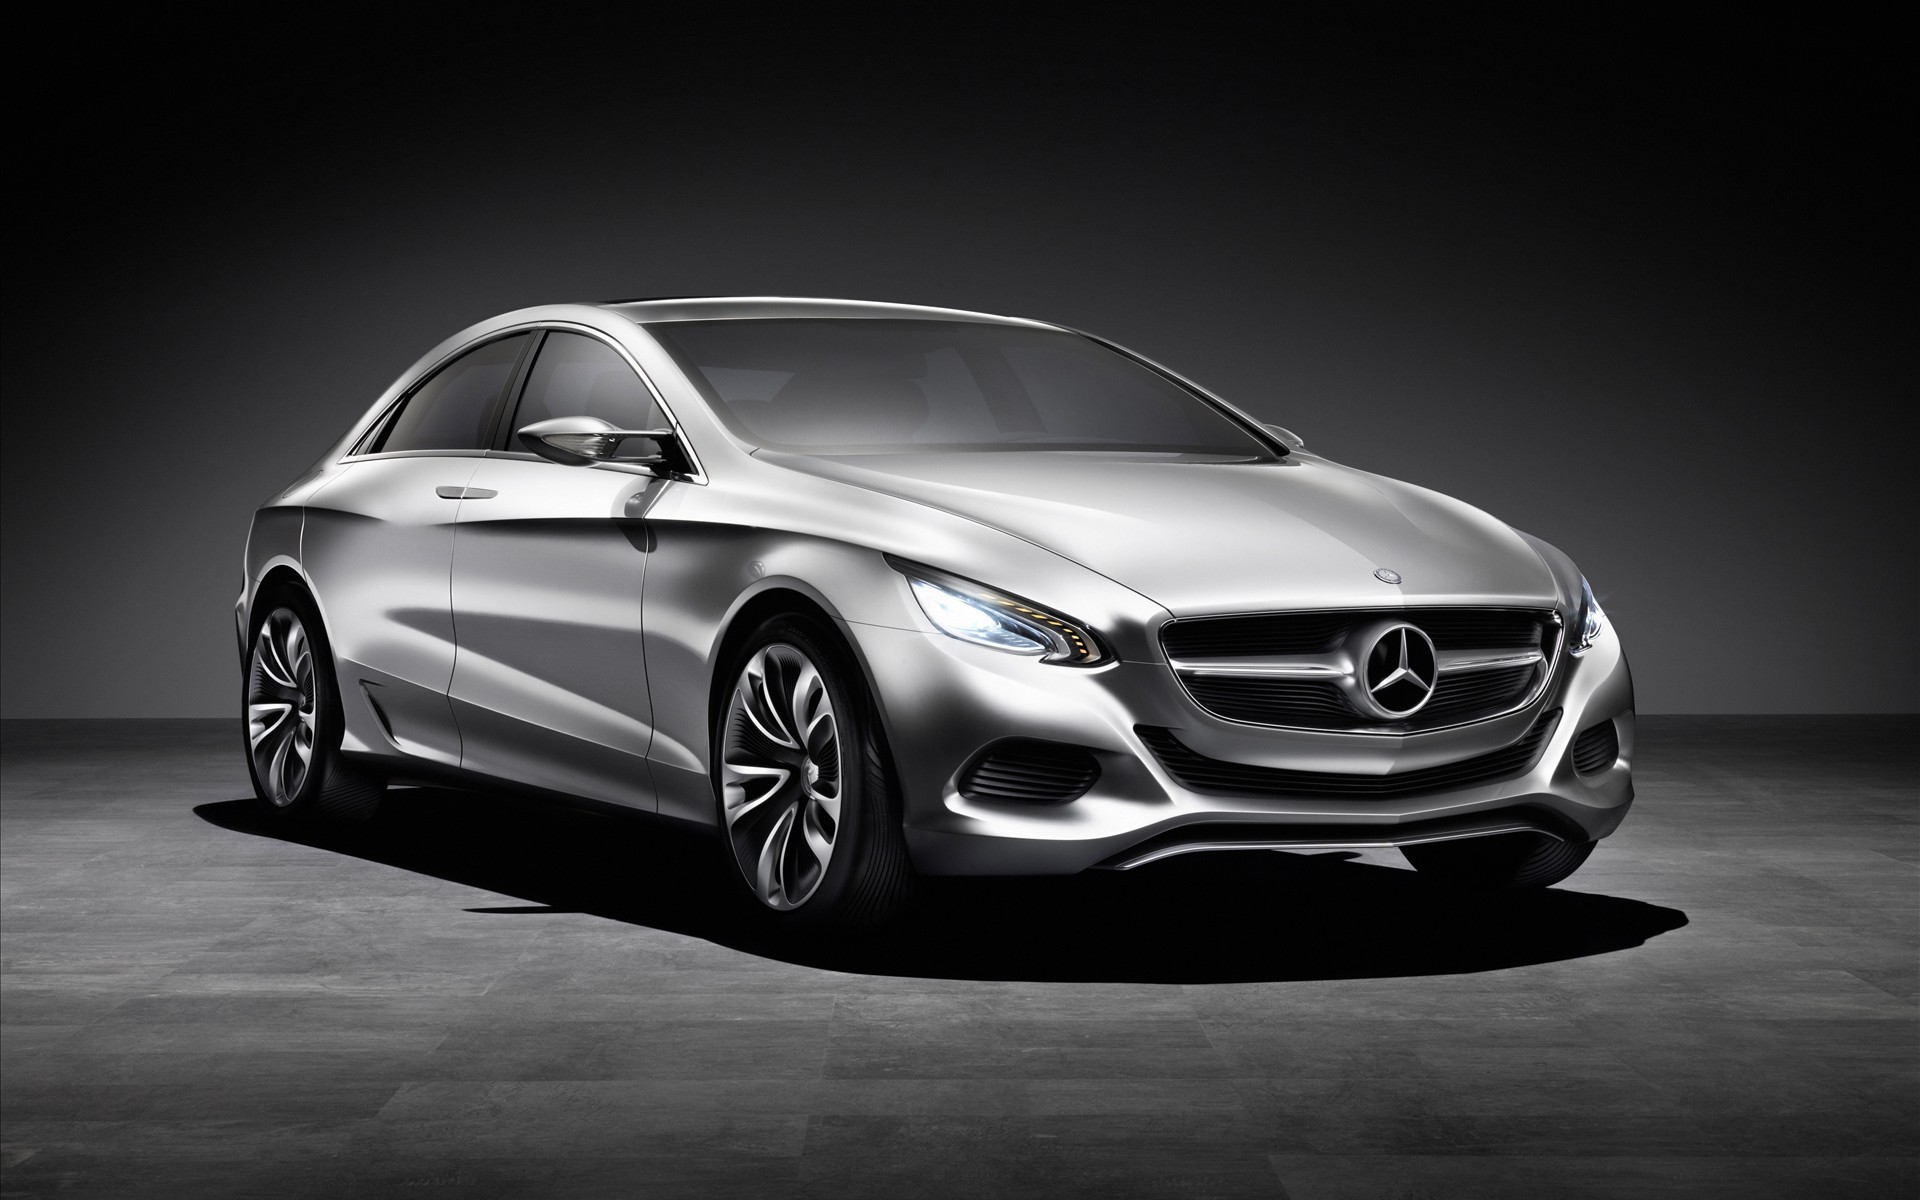 2010 Mercedes Benz F800 Style Concept Wallpapers | HD Wallpapers